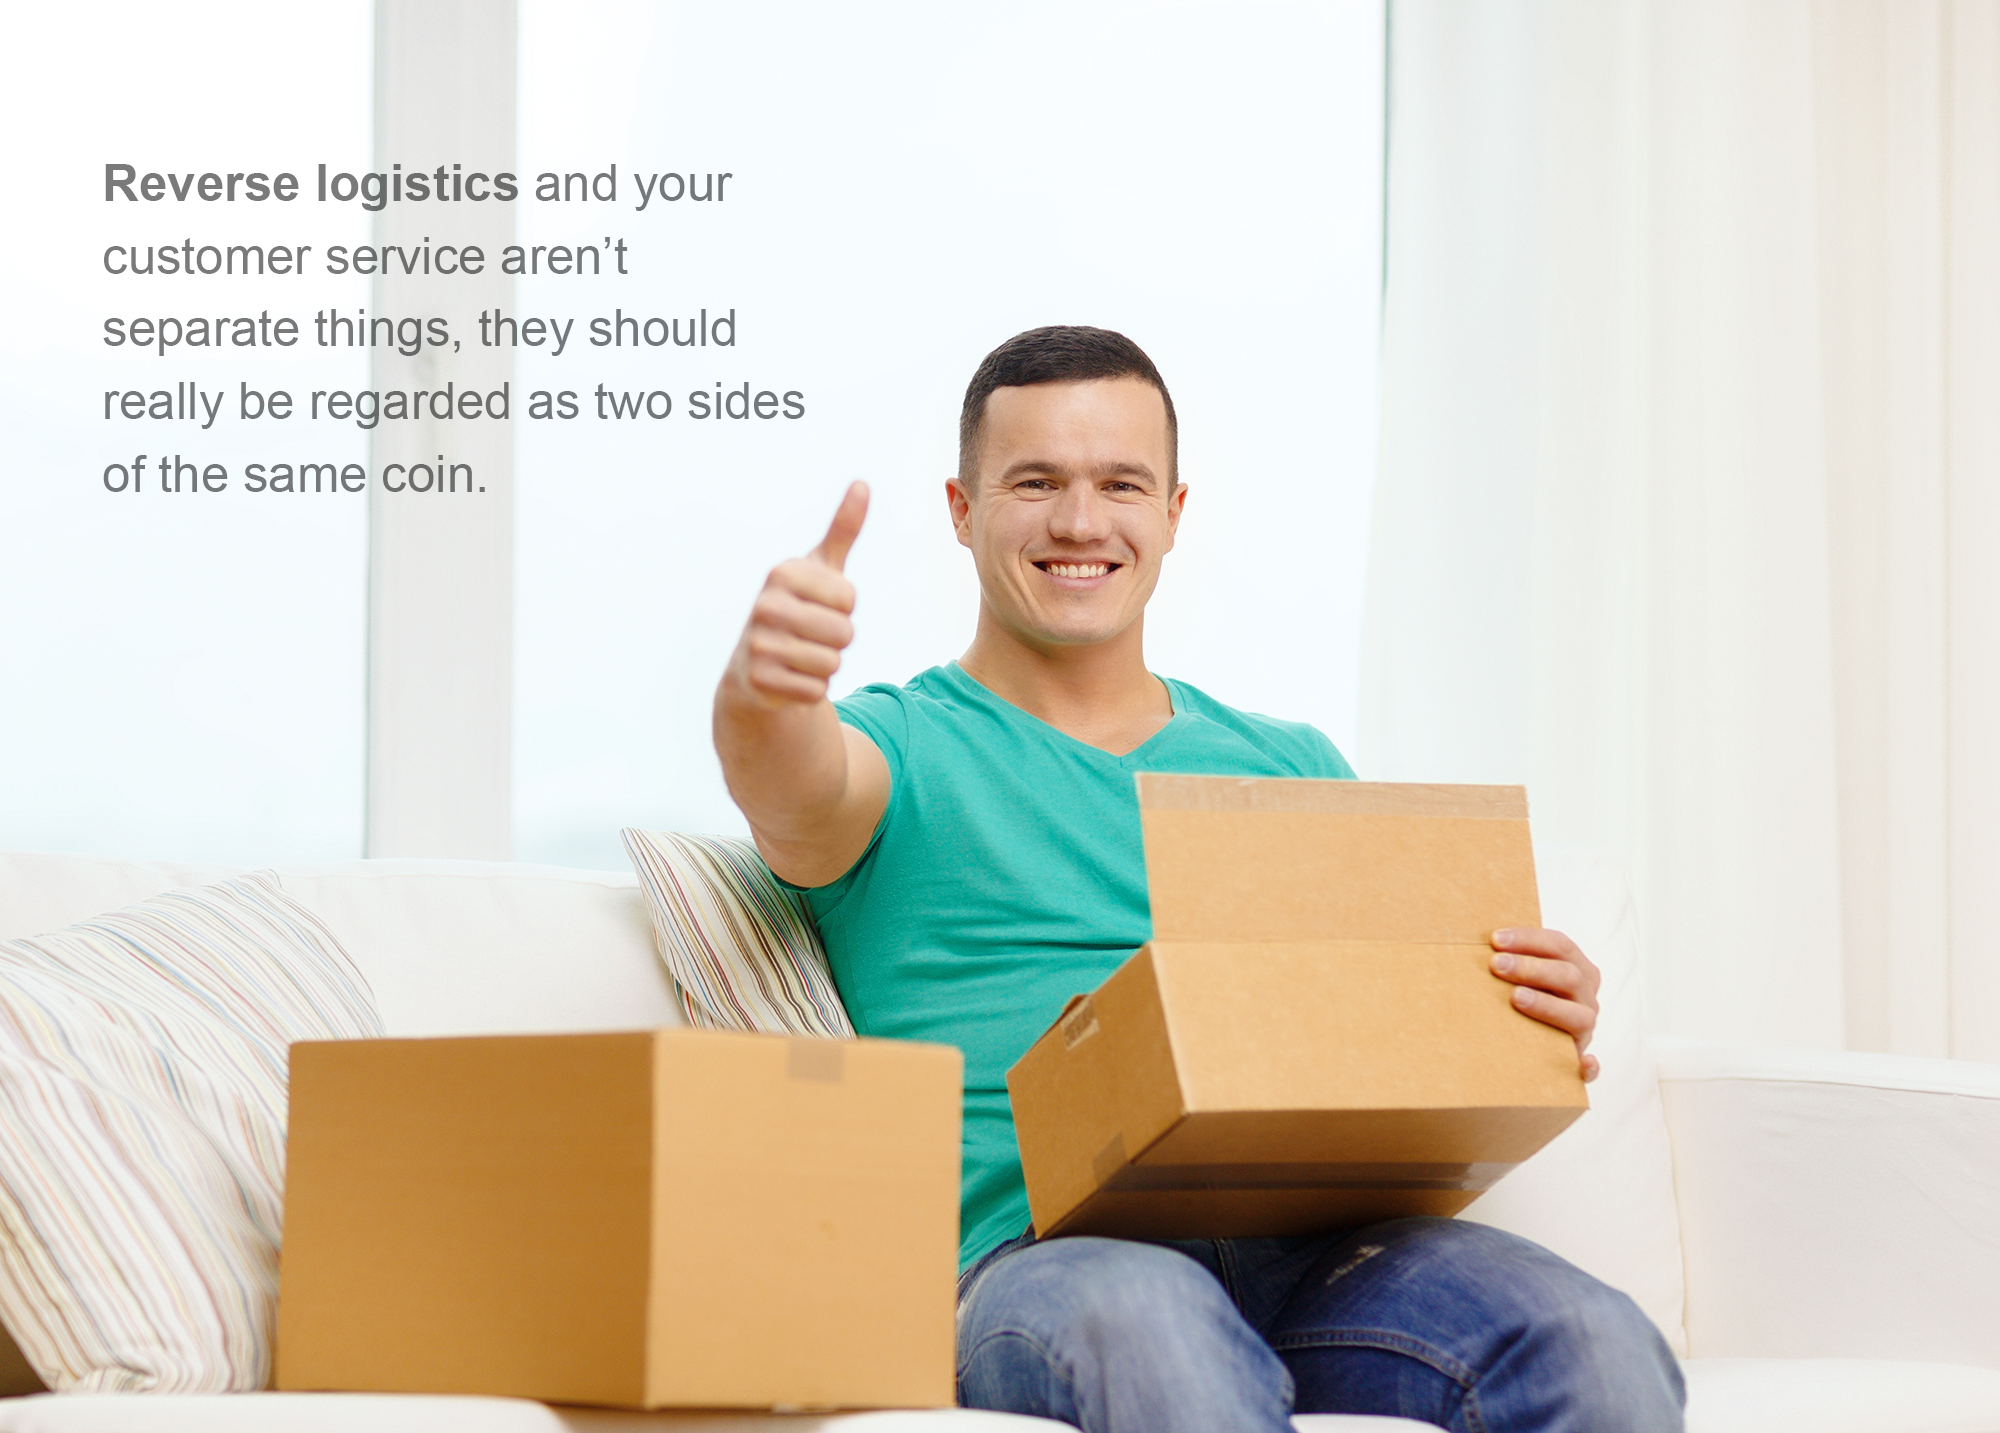 Customer Service and Reverse Logistics